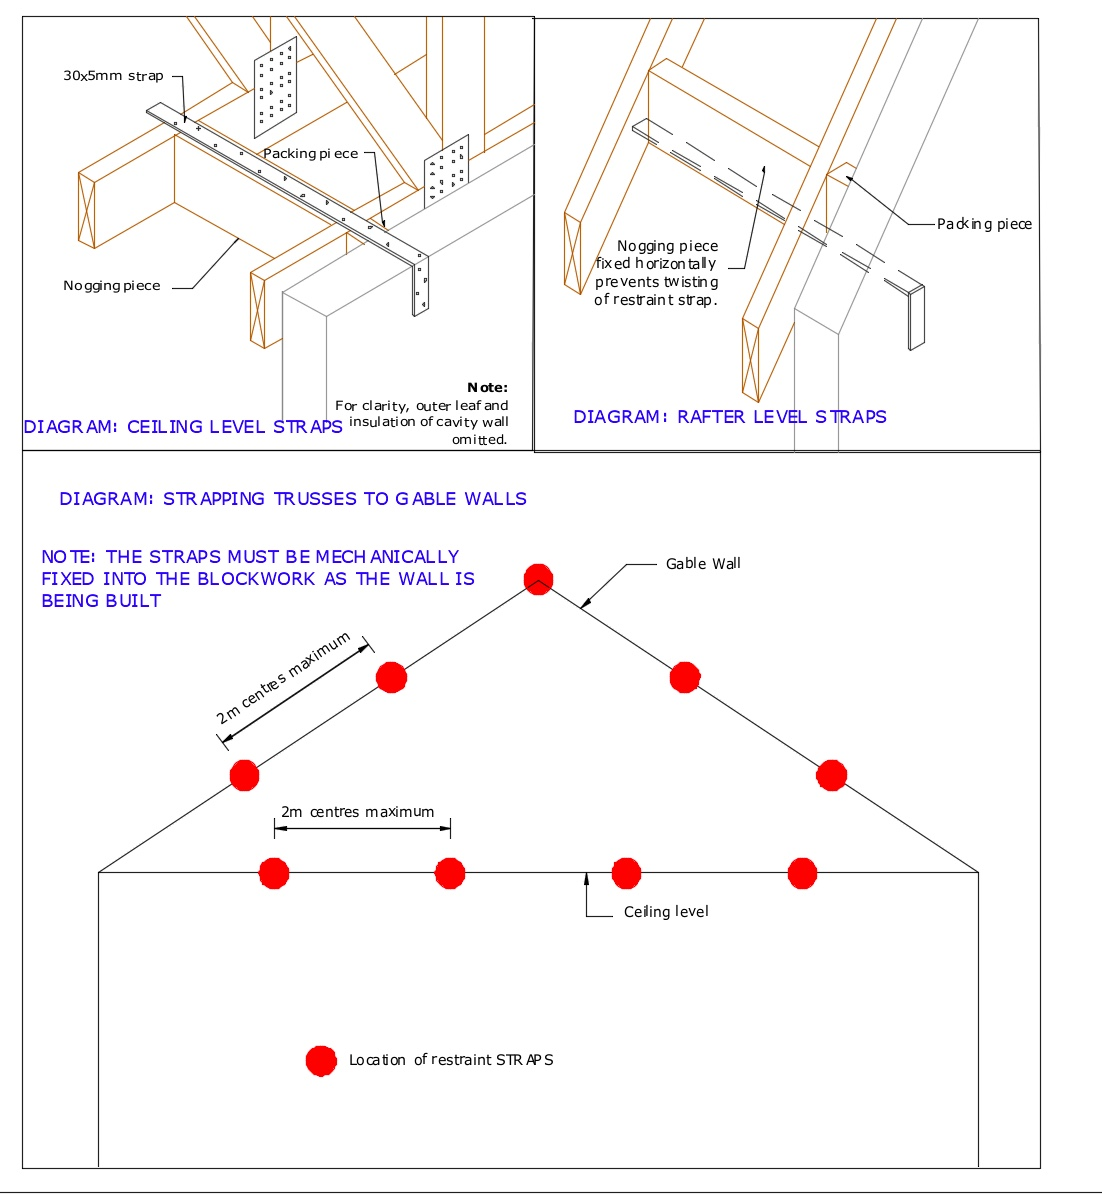 Diagram D4 - Strapping trusses to gable ends at ceiling and rafter level